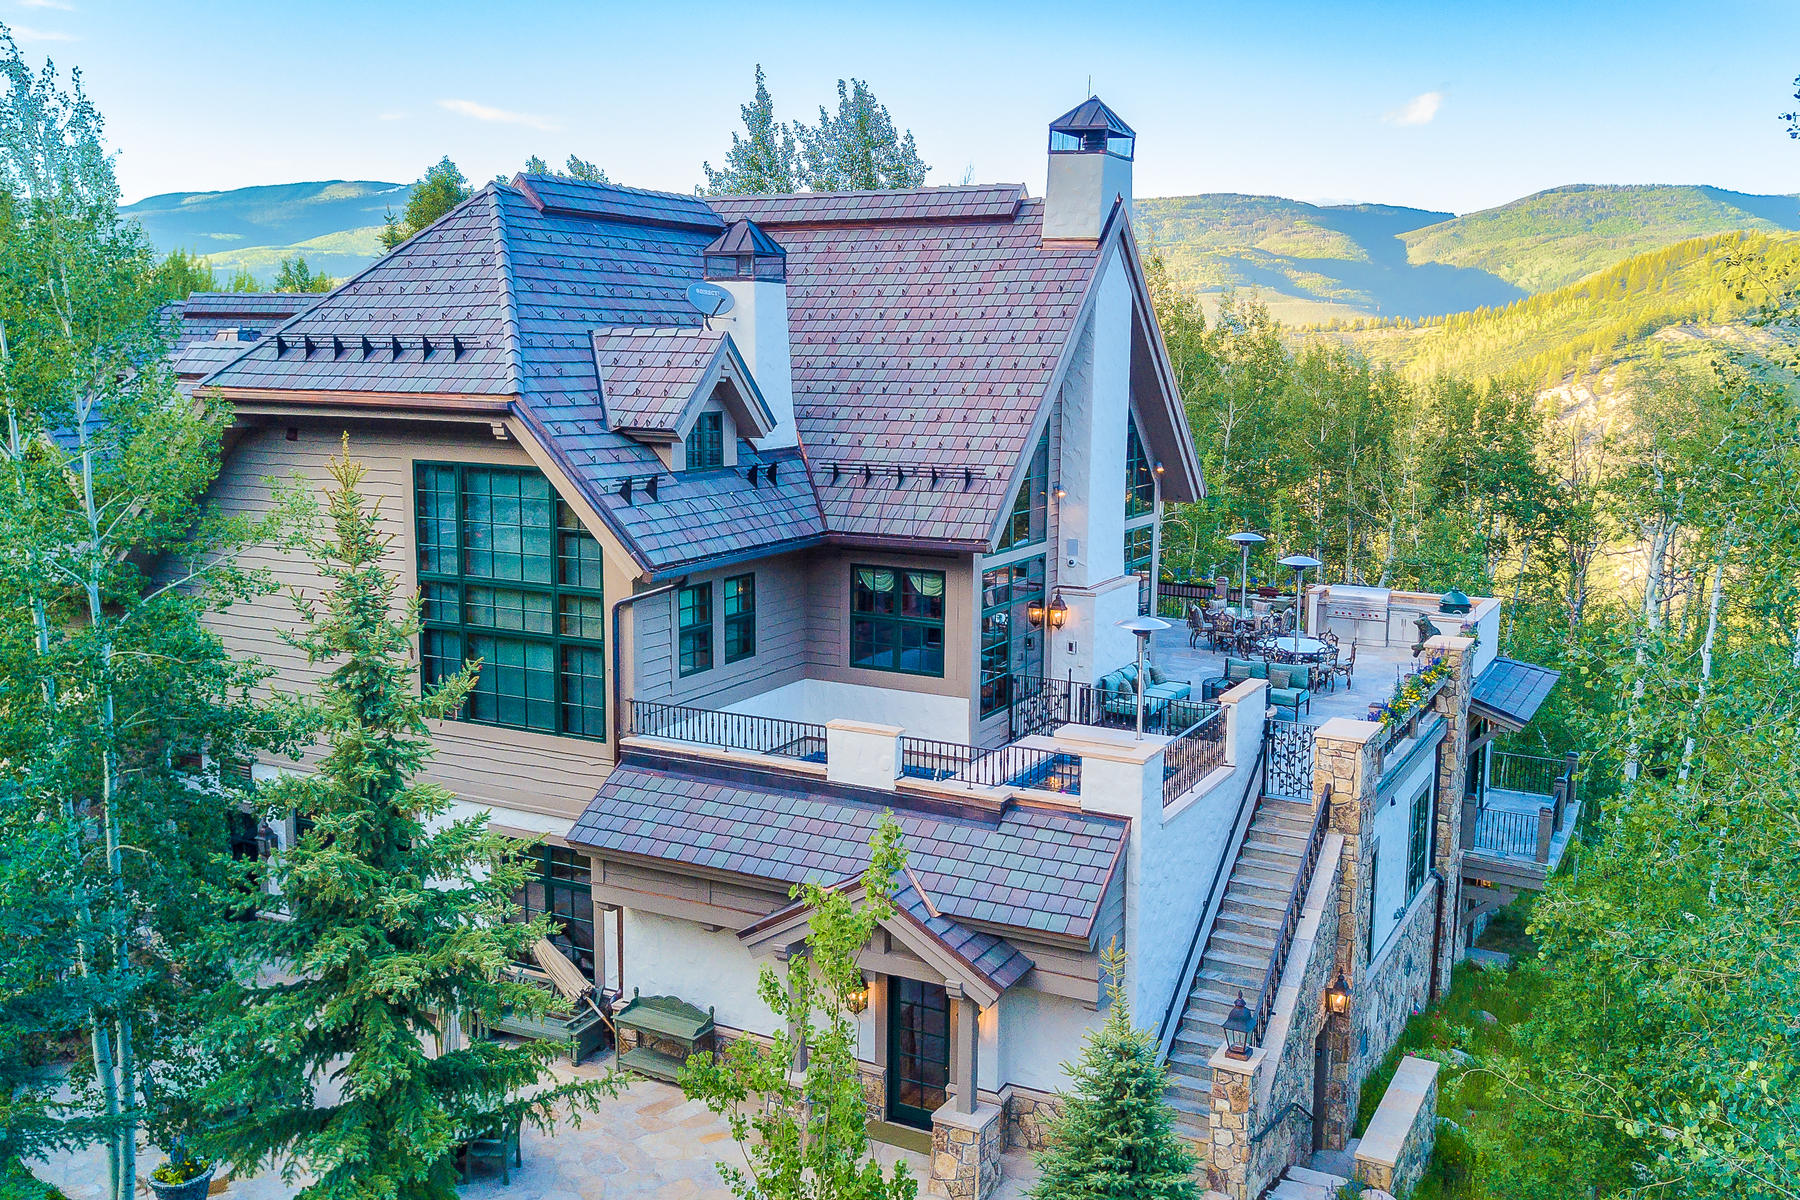 Single Family Homes for Sale at Extensive new construction with state-of-the-art technology 22 Strawberry Park Road, Beaver Creek, Colorado 81620 United States